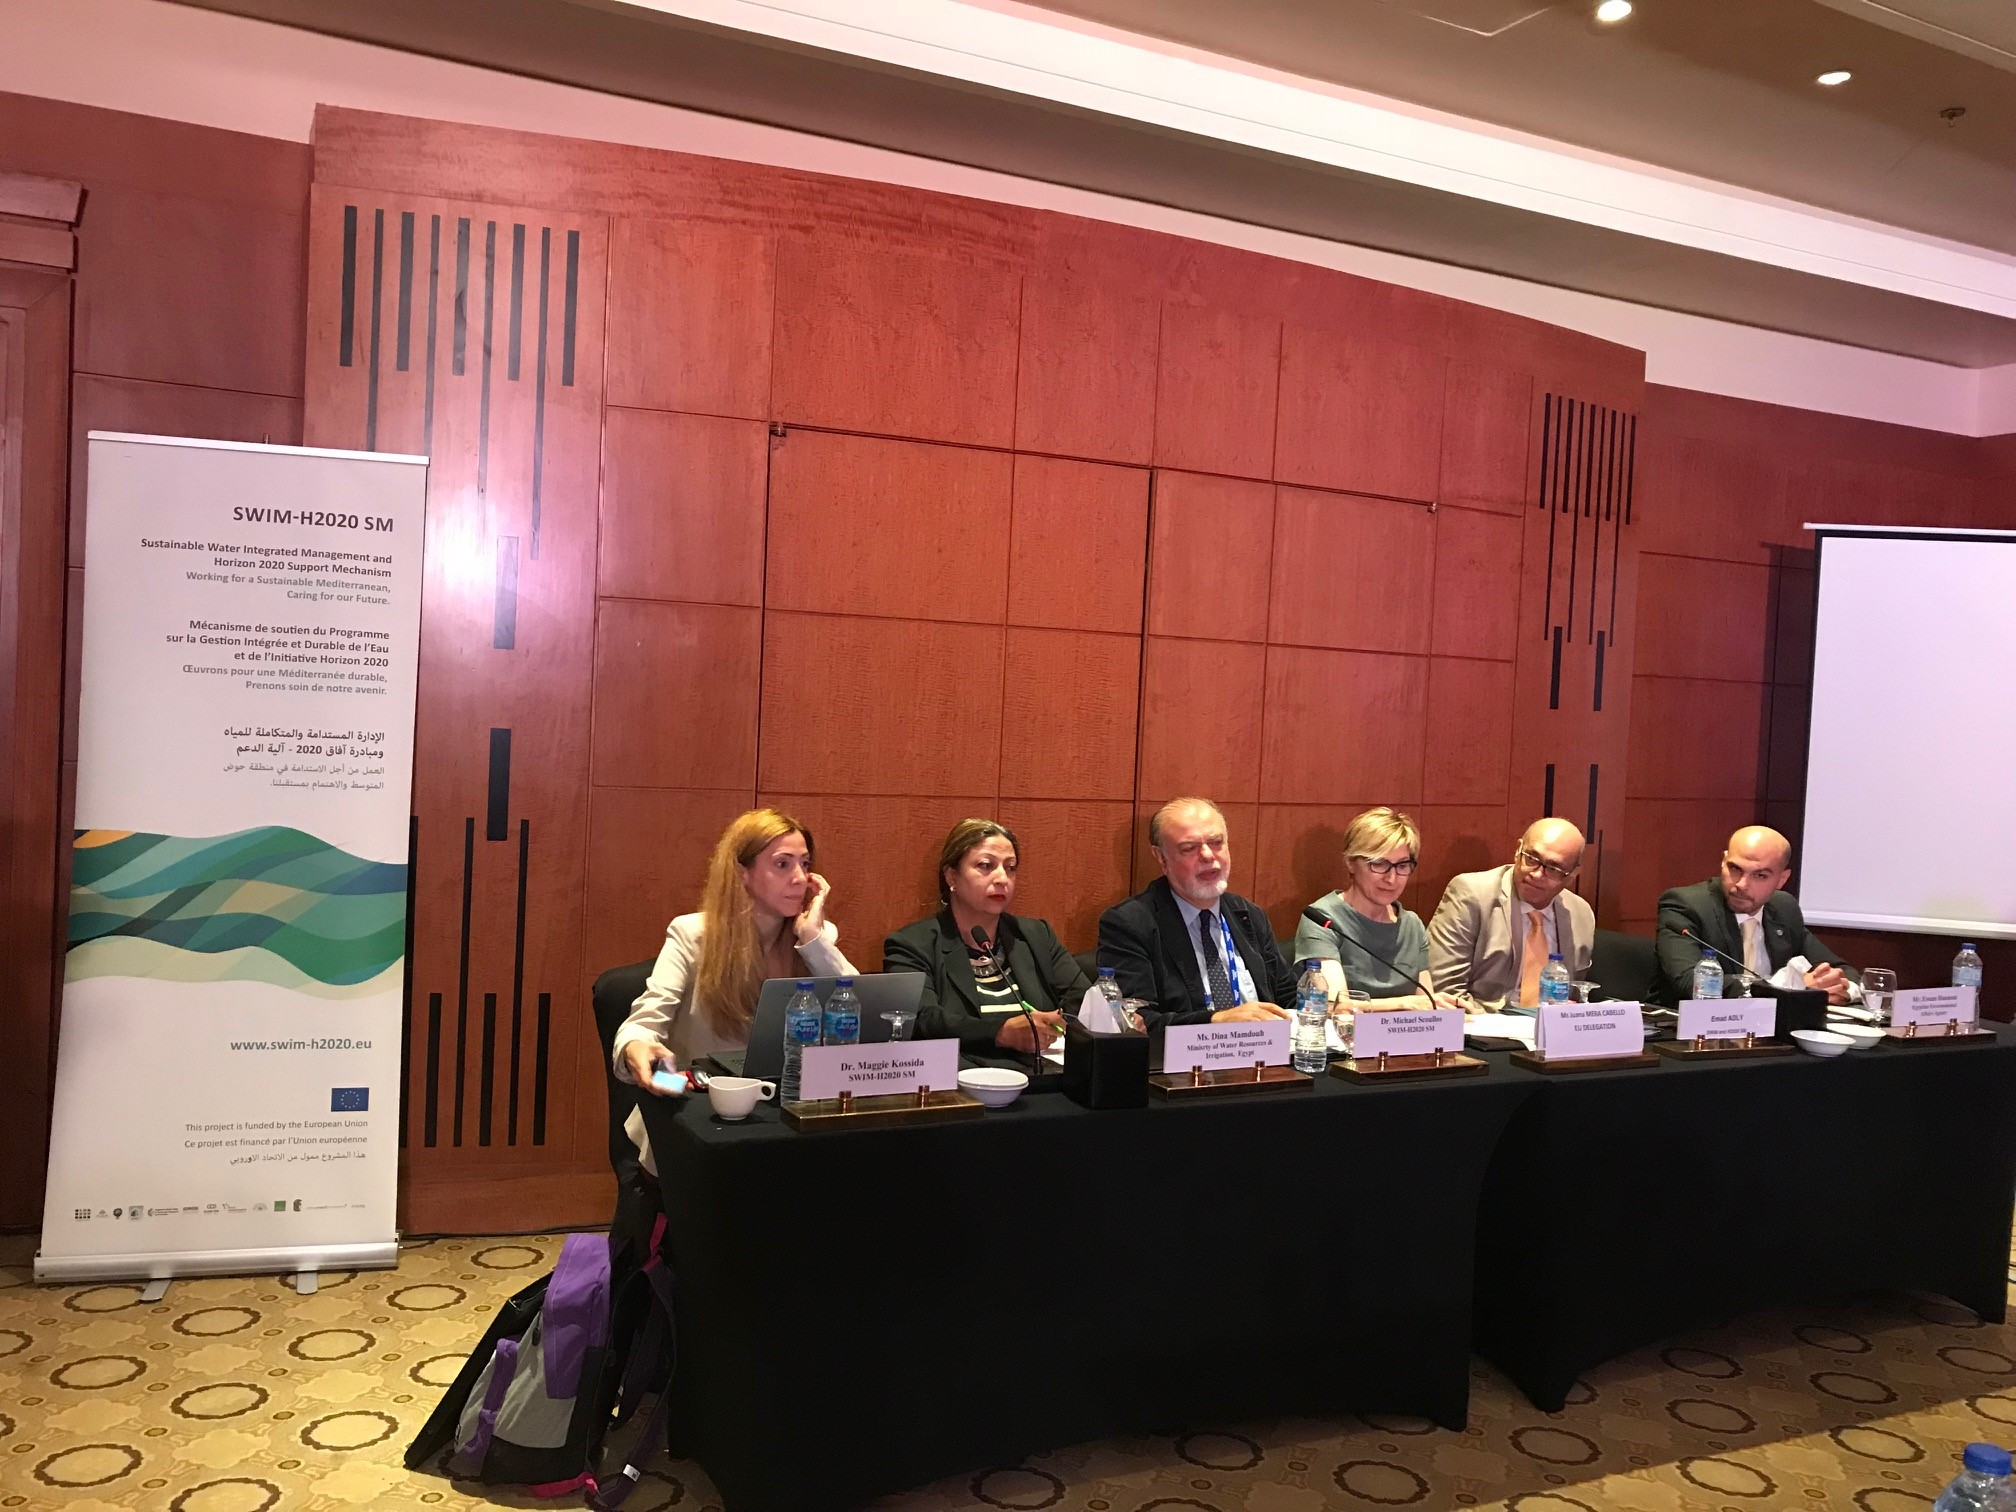 16 October 2018, Cairo, Egypt – SWIM-H2020 SM Side Event Cairo Water Week: National Meeting in Egypt